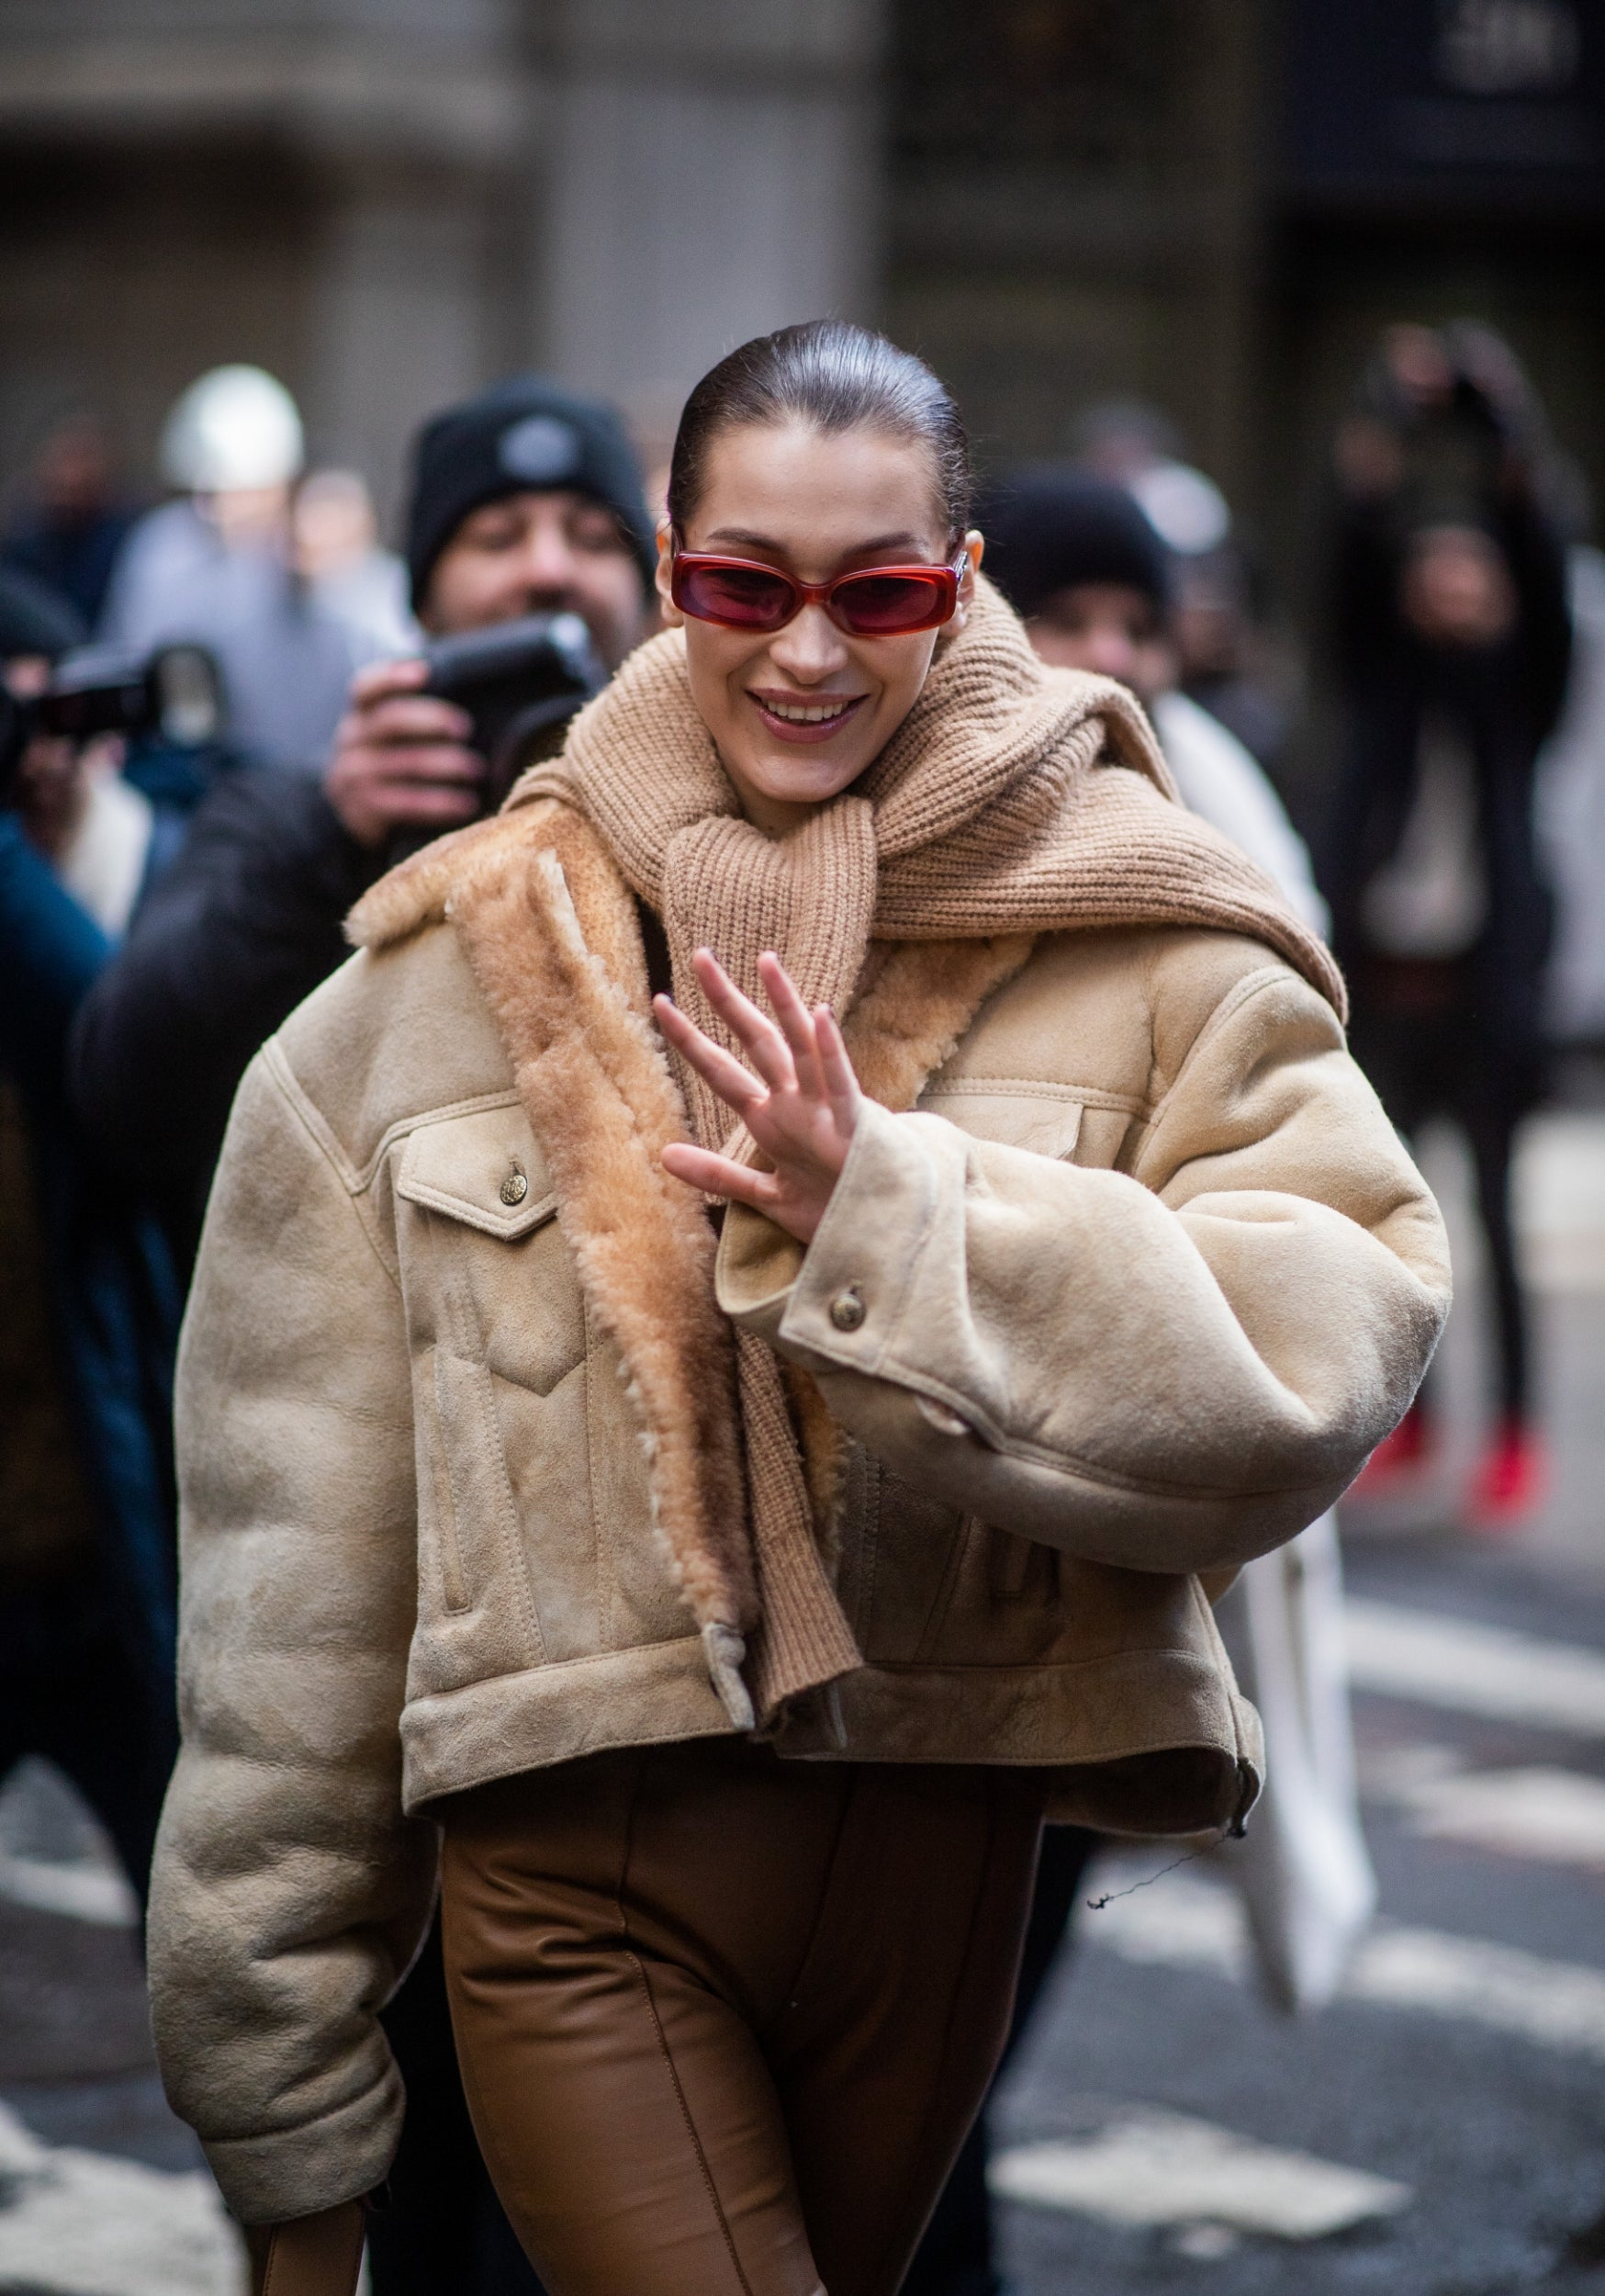 99477d7948fa New York Fashion Week: The best moments so far, Tom Ford's anti ...